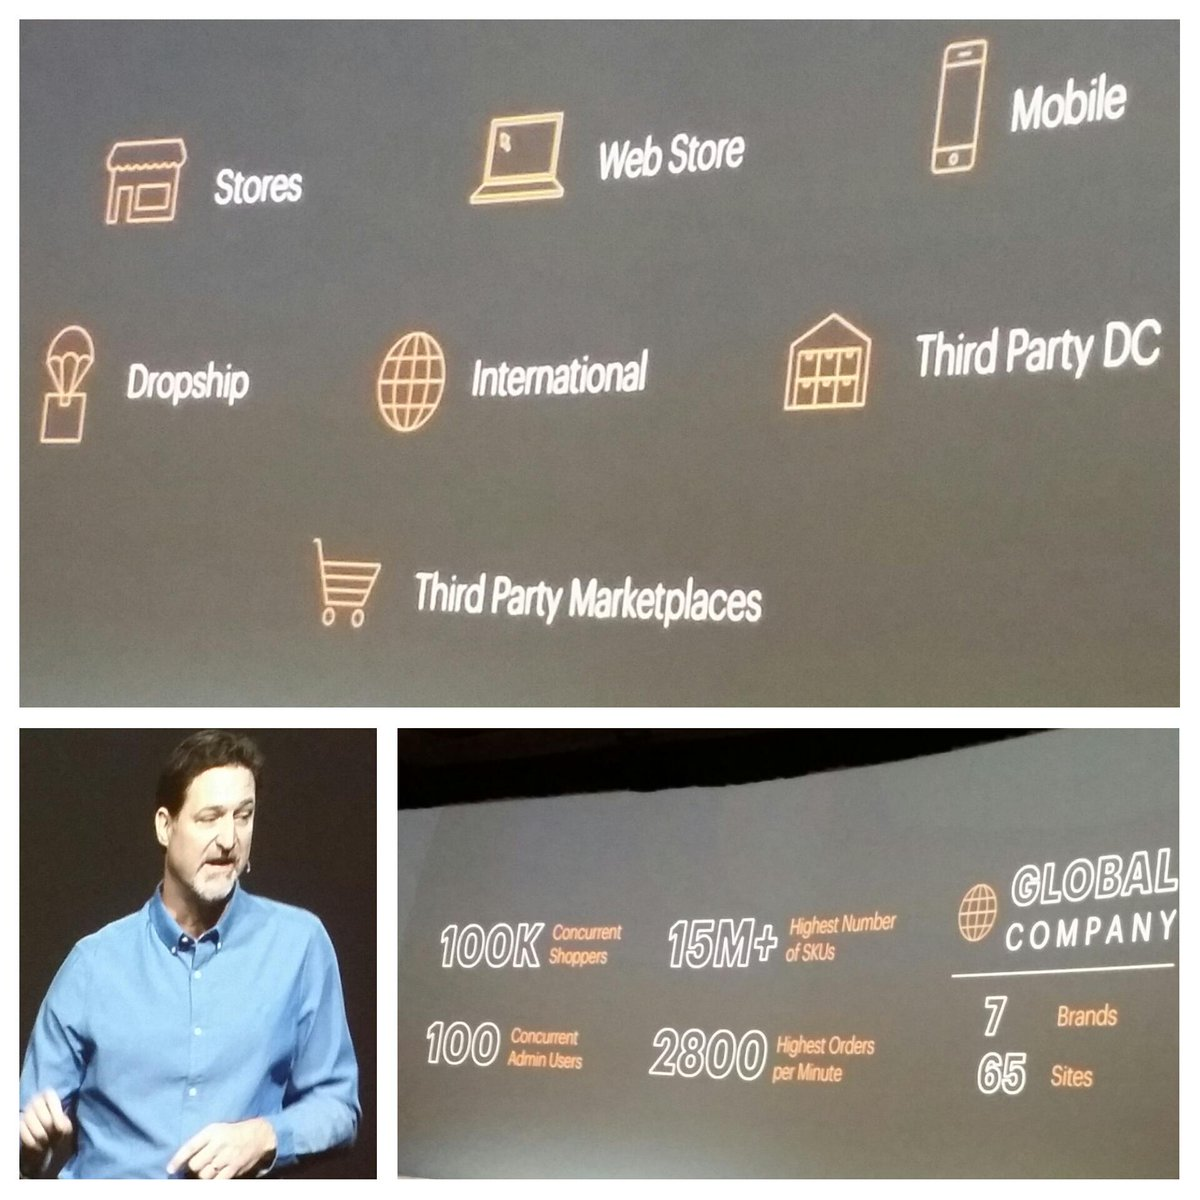 LawrenceByrd: Leading #ecommerce platform @Magento delivers #omnichannel at scale. @mklave1 #imaginecommerce http://t.co/OfFz9GJ1mY